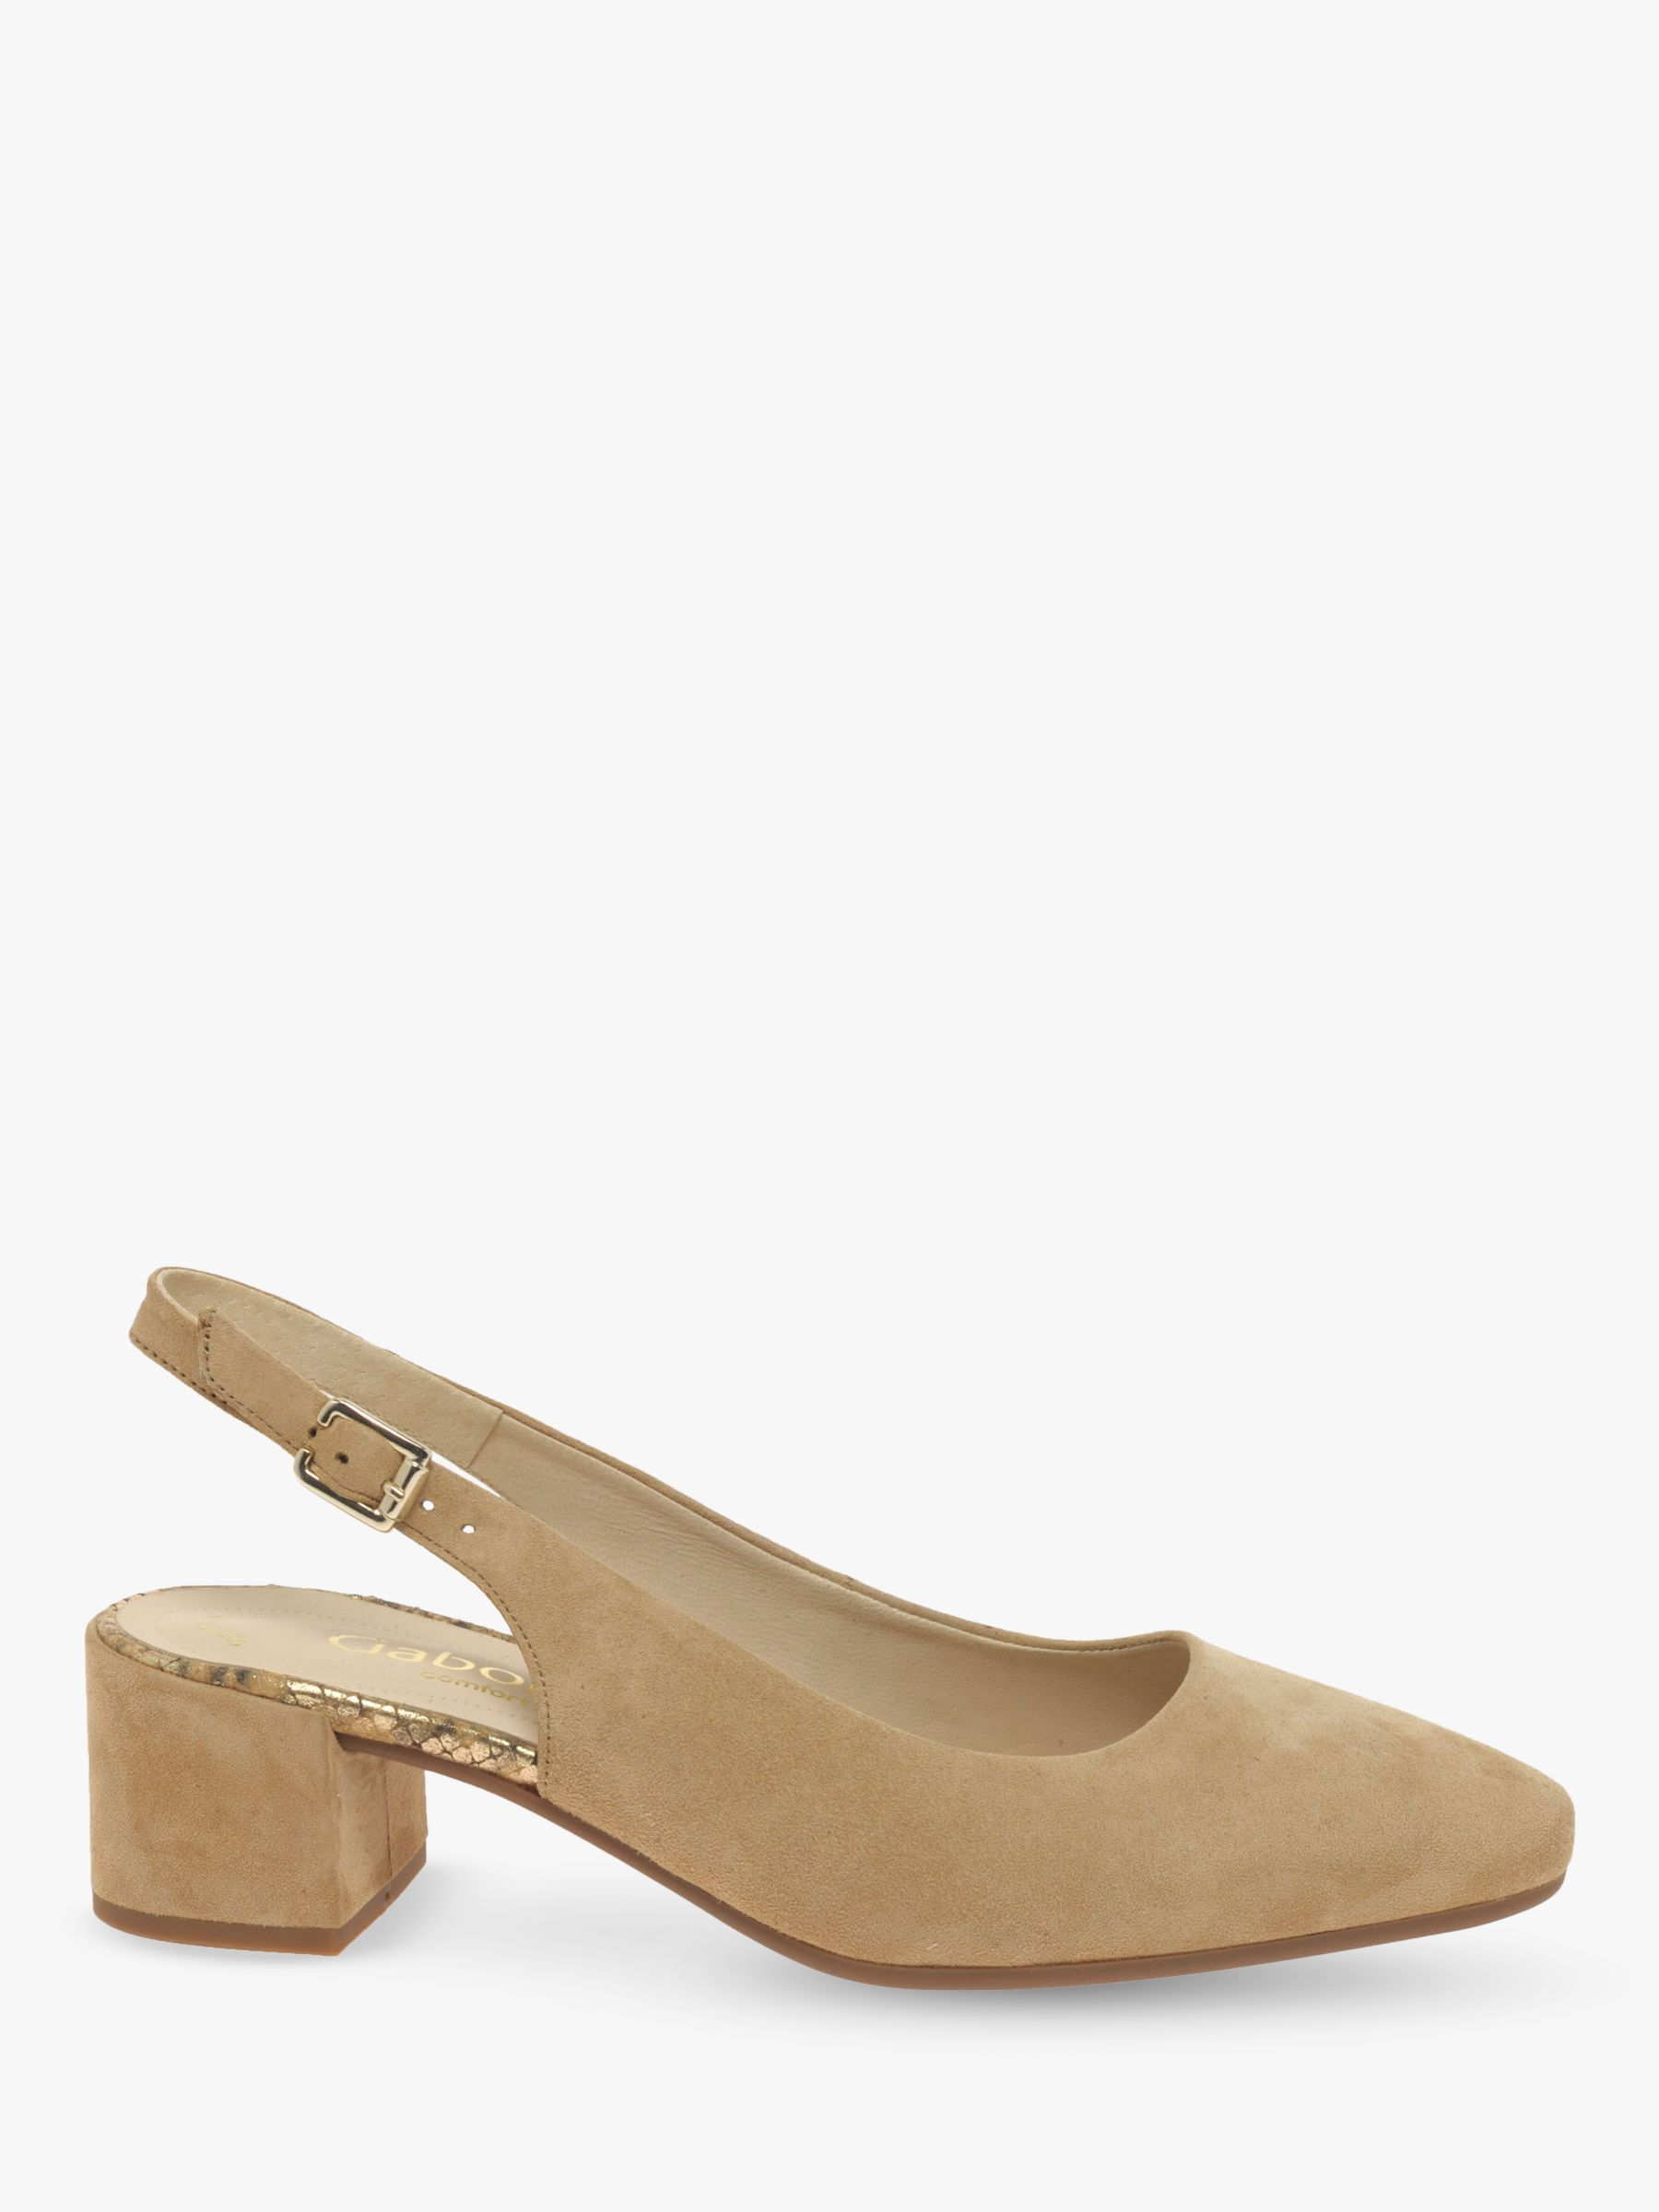 Gabor Gabor Joel Wide Fit Block Heel Slingback Court Shoes, Caramel